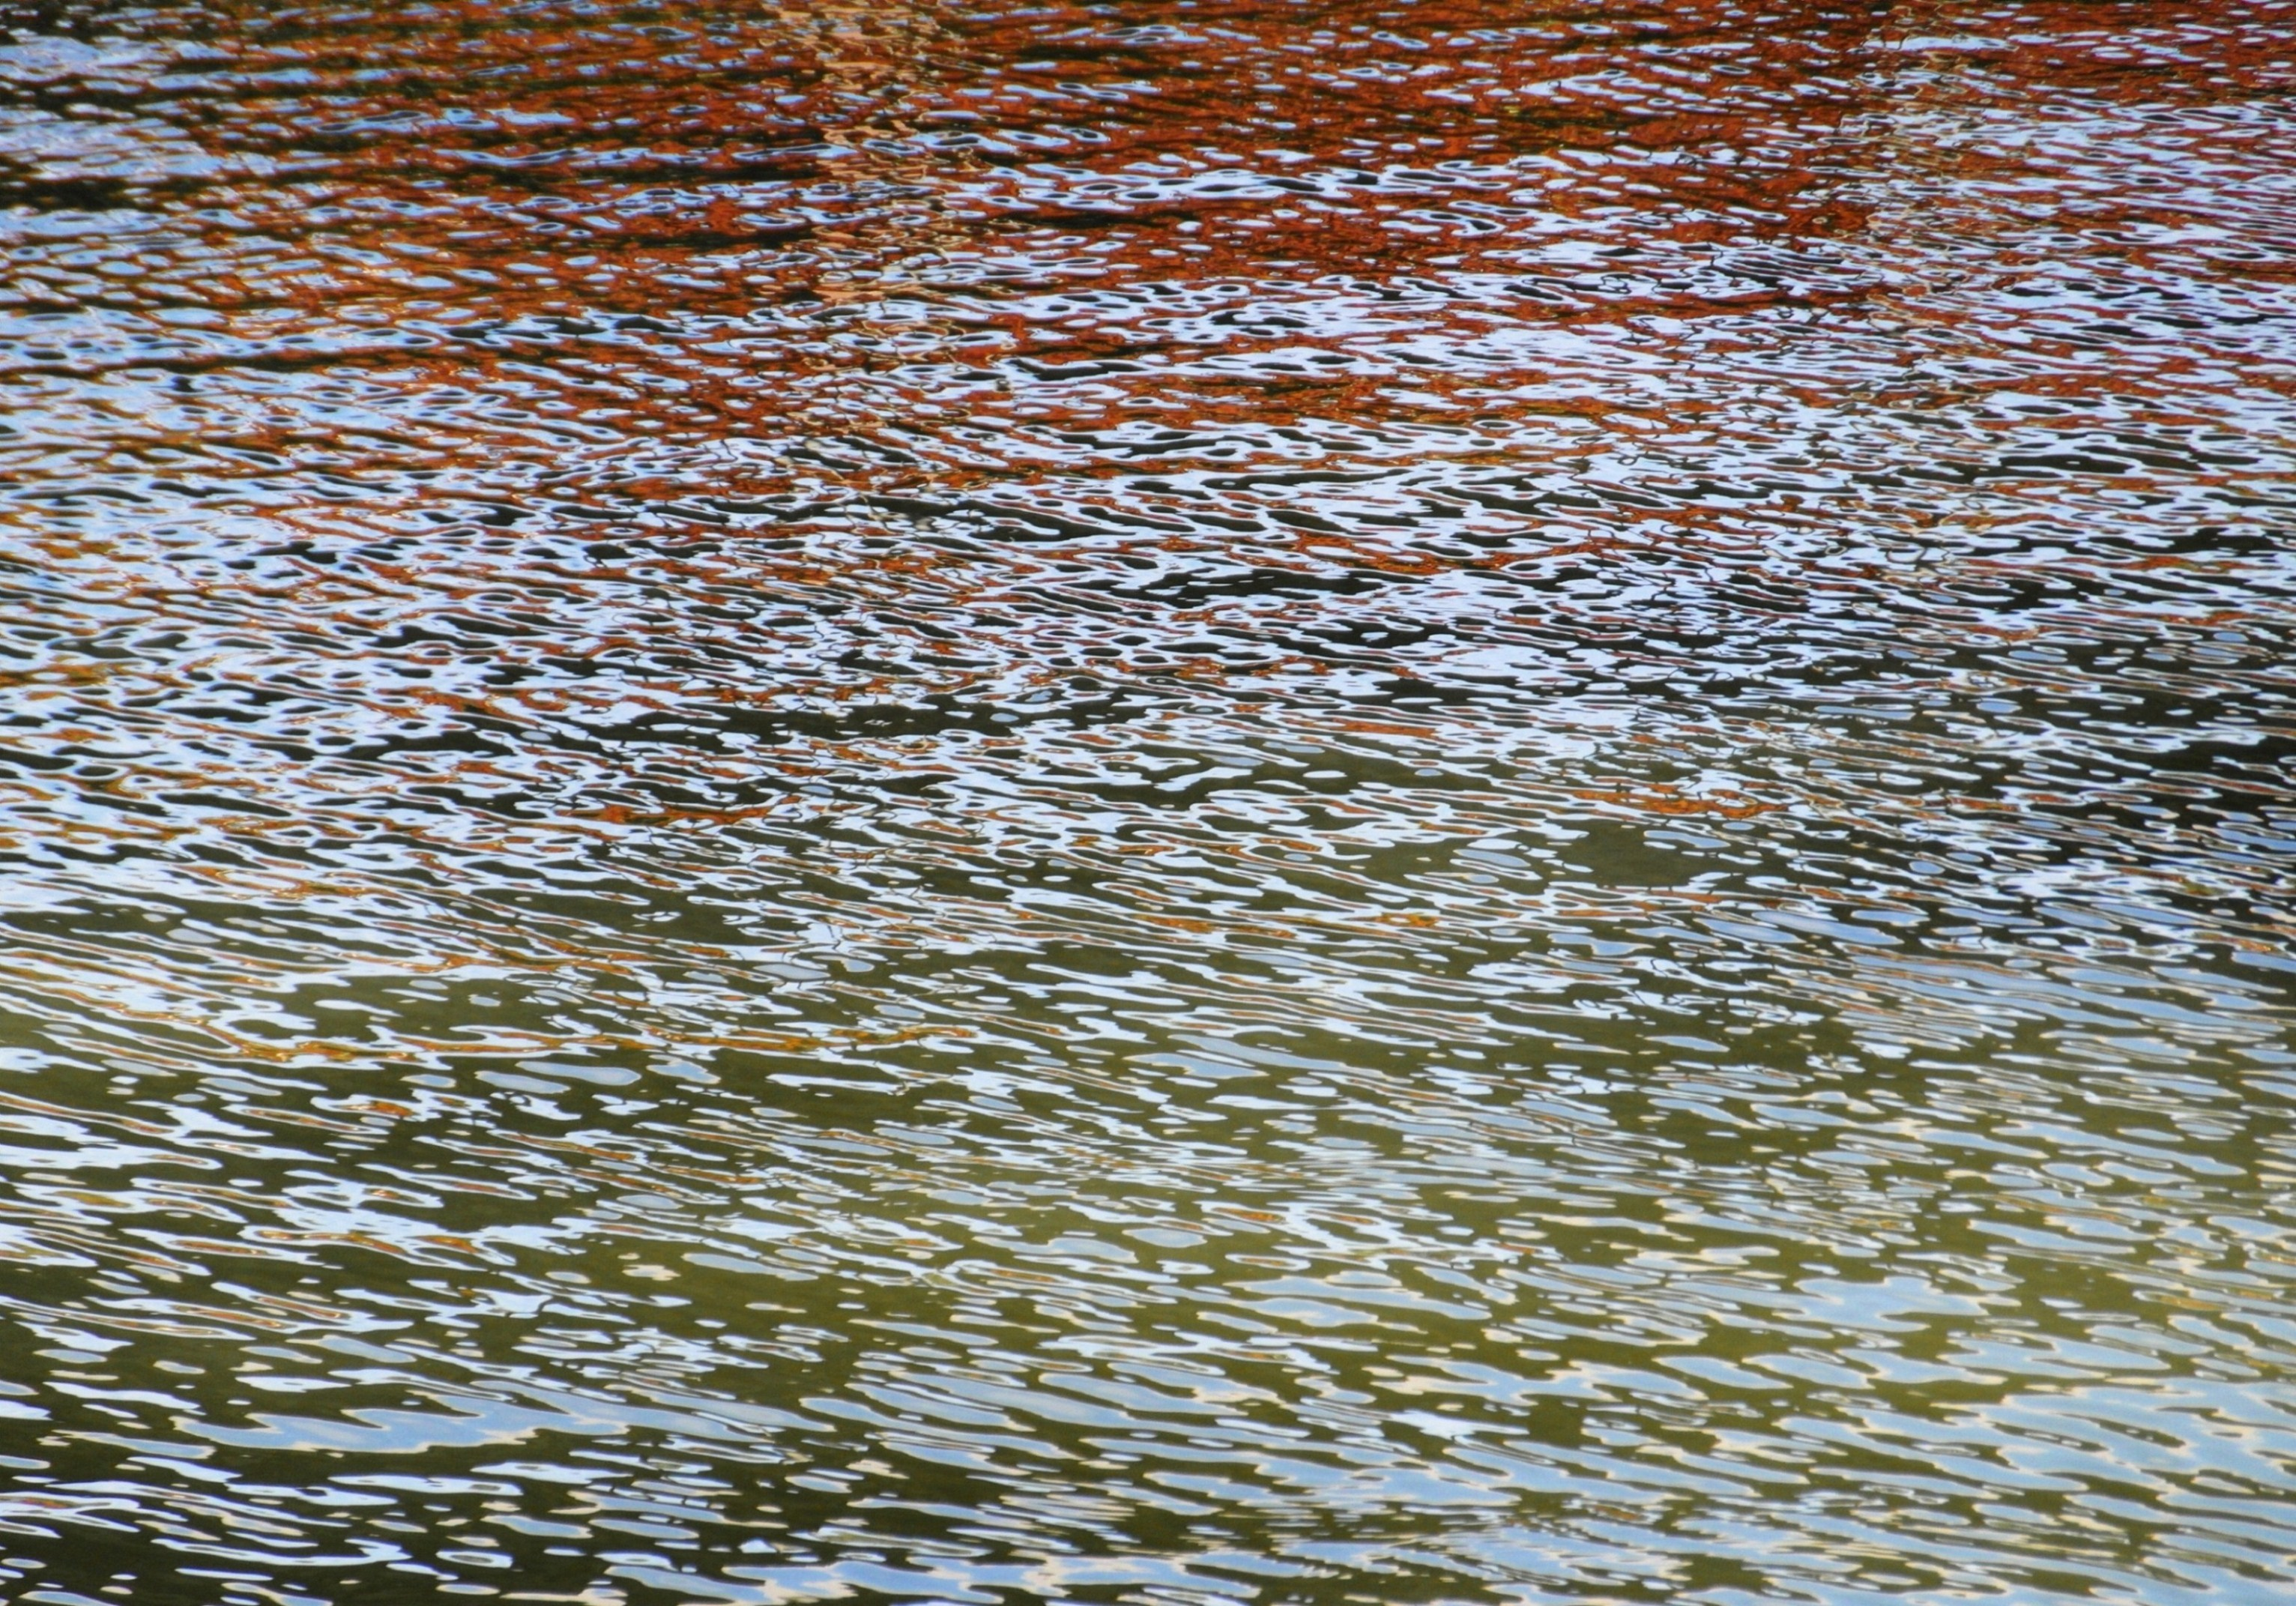 Water Ripples Background, Abstract, Peaceful, Waves, Watery, HQ Photo